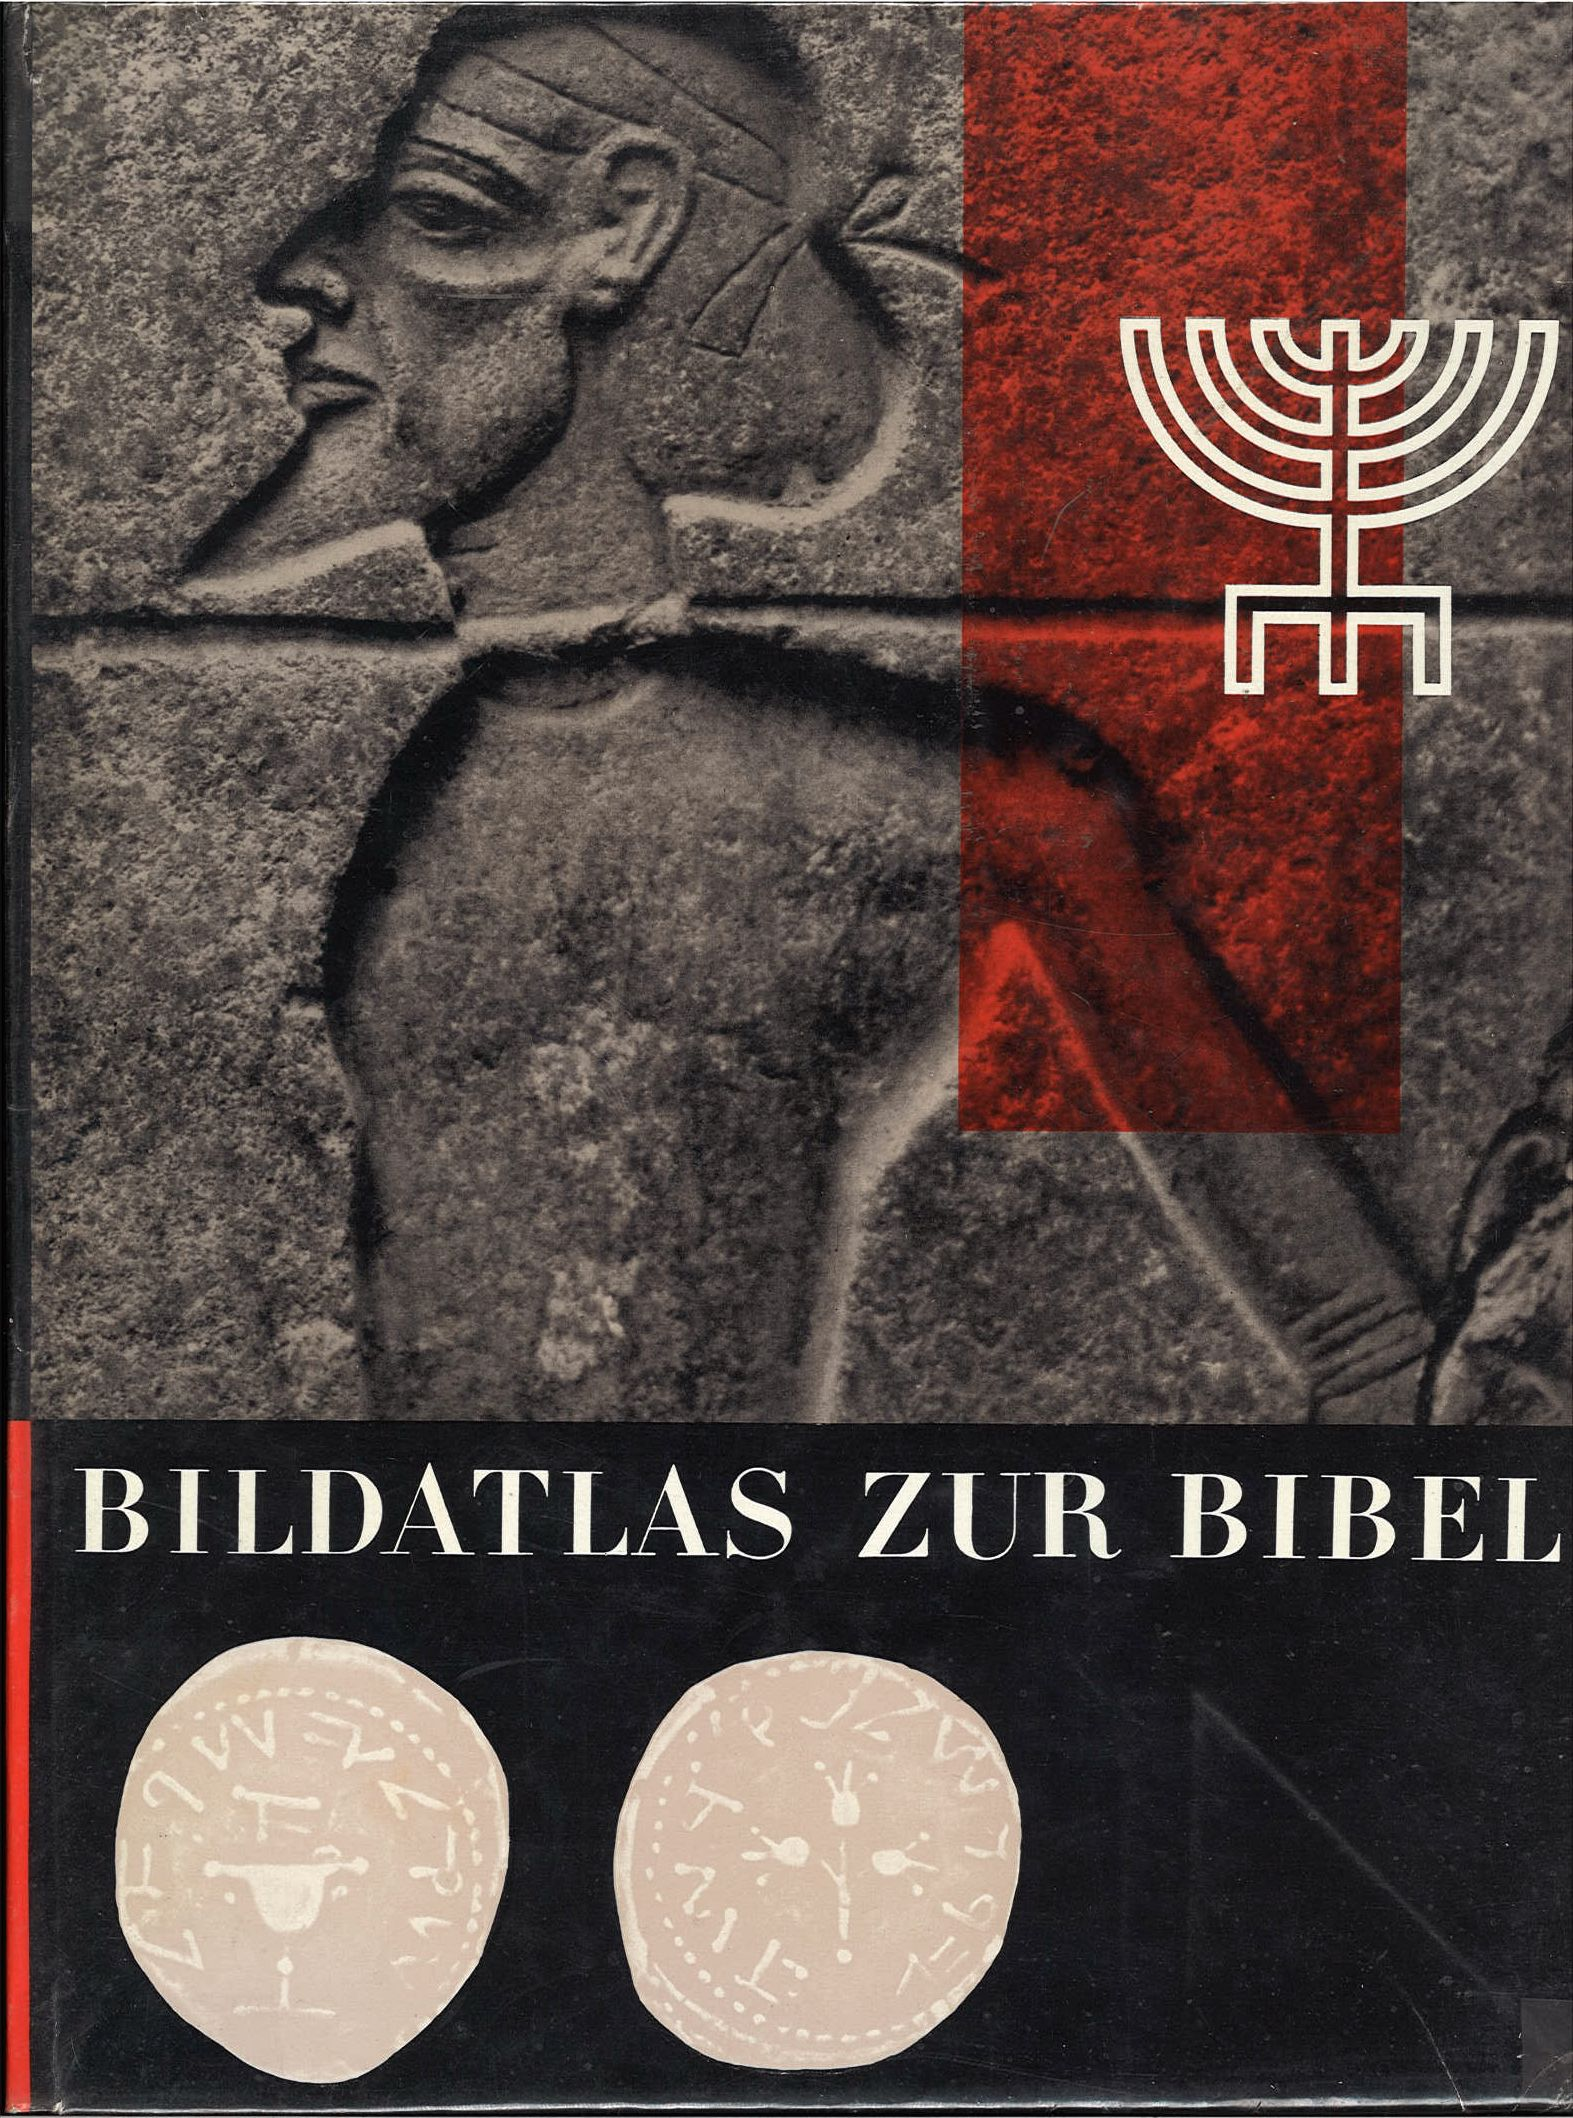 BILDATLAS ZUR BIBEL - L. H. GROLLENBERG  - GERMAN TEXT